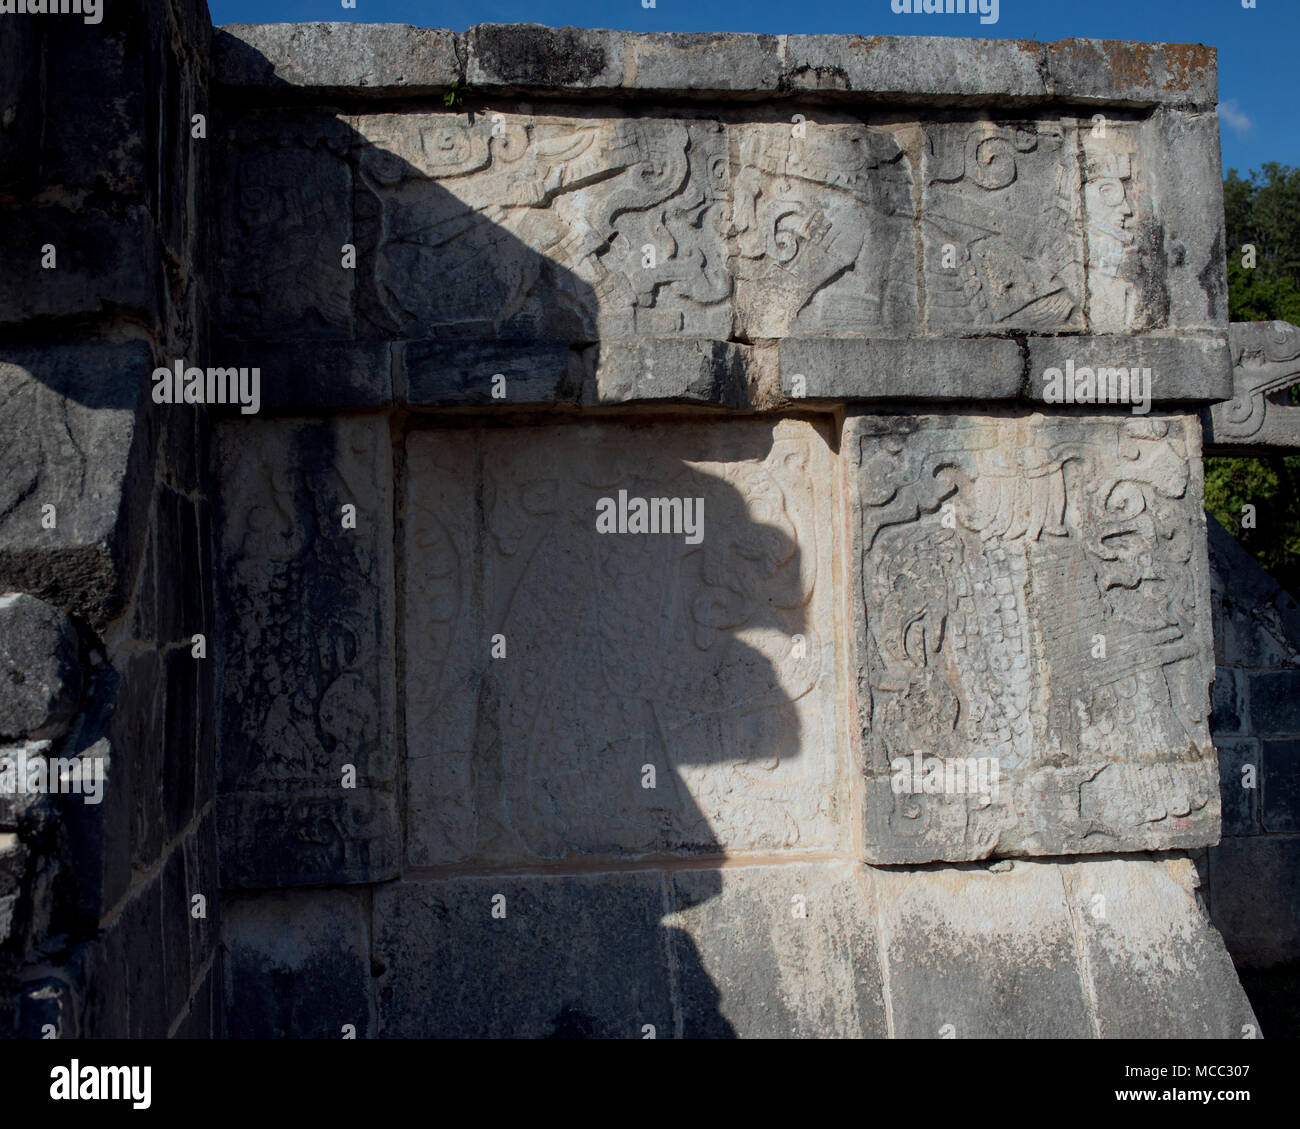 The sun casts the shadow of a snake at the Maya ruins of Chichén Itzá, Yucatán State, Mexico. - Stock Image